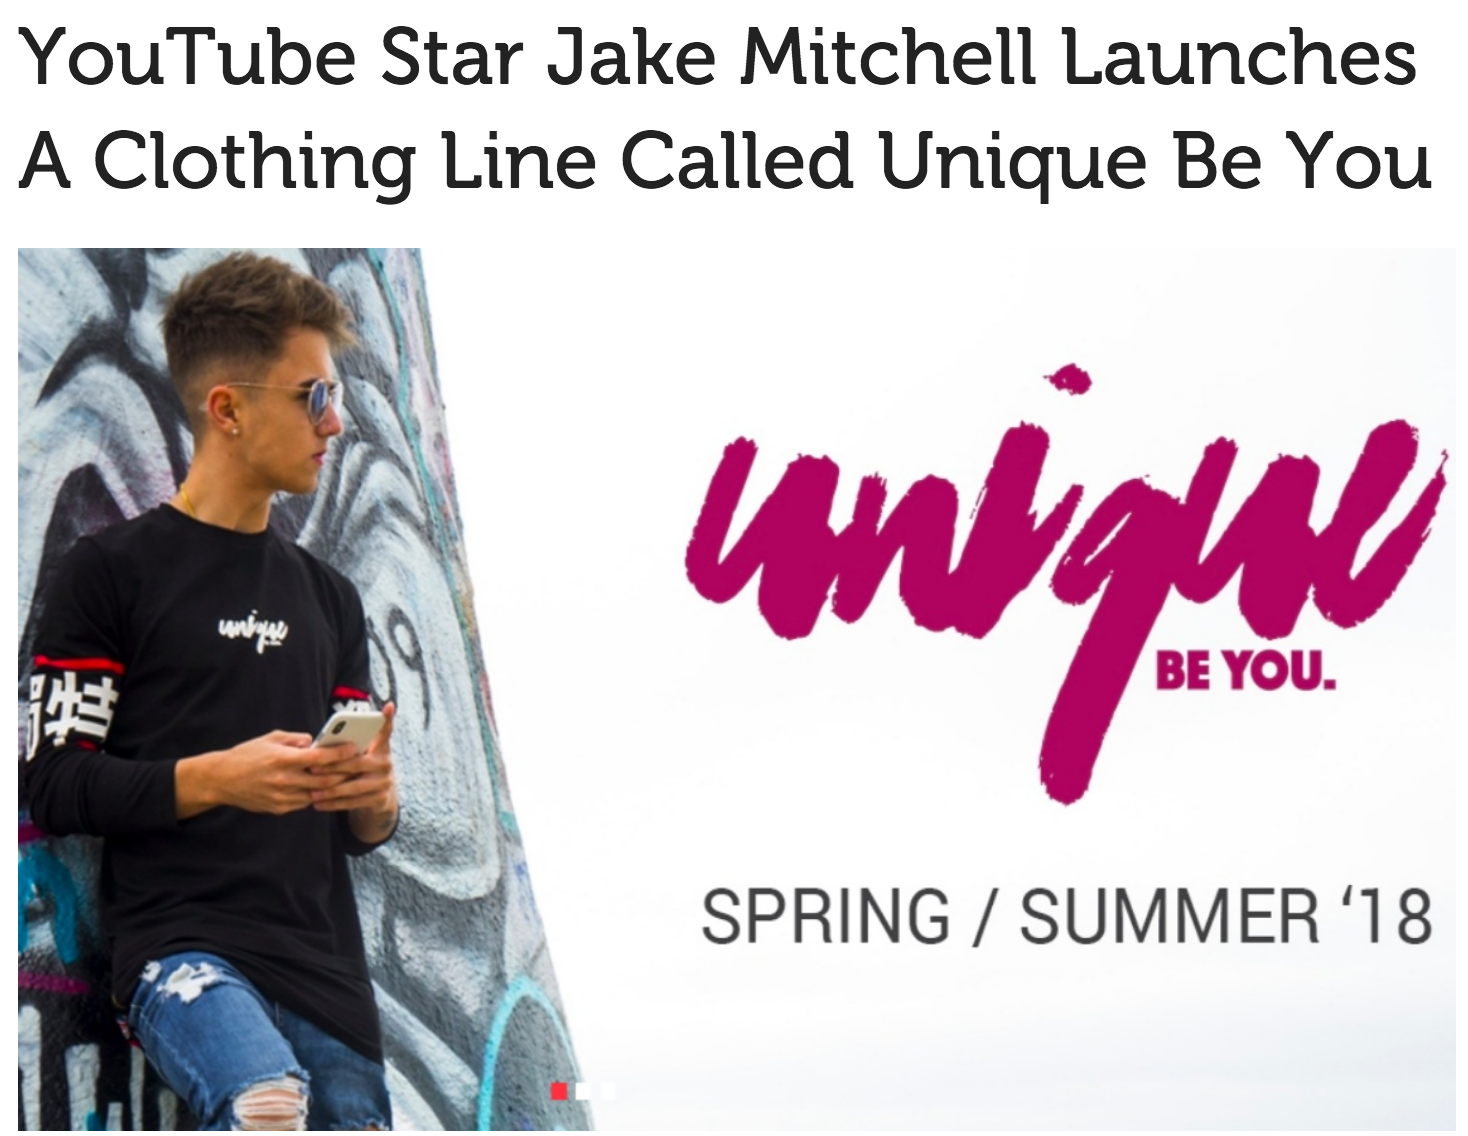 YouTube star to debut his own clothing line is Jake Mitchell